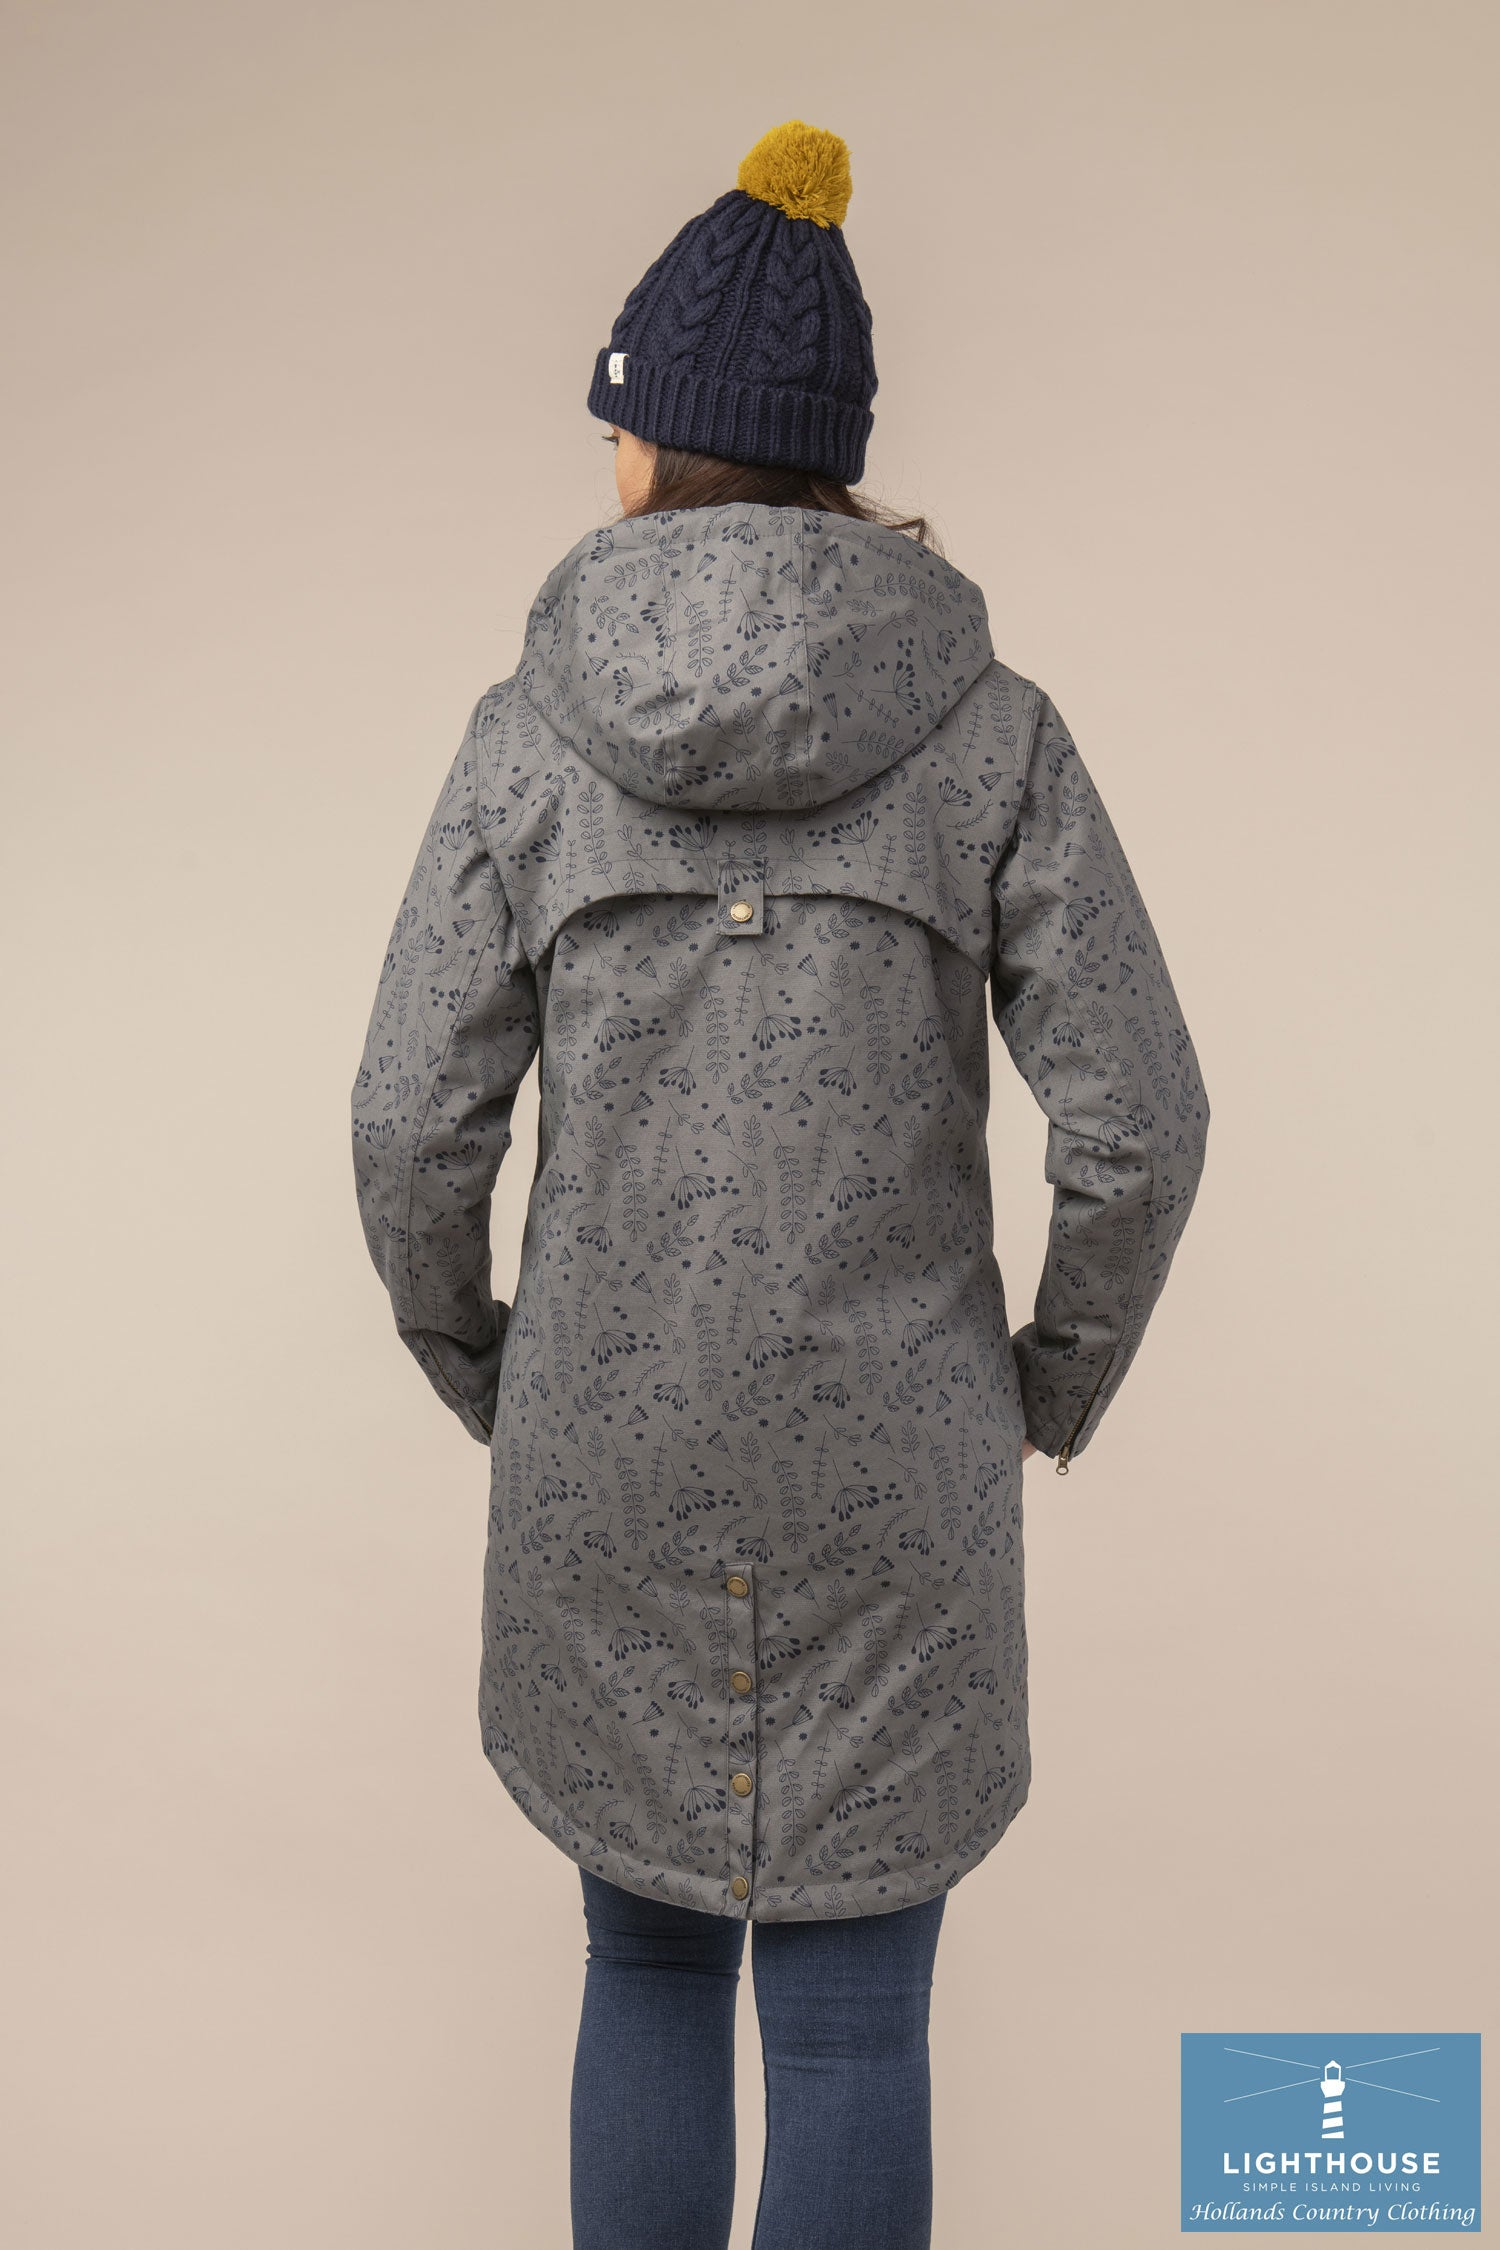 Back View showing tail Alanna Quilted Waterproof Coat by Lighthouse